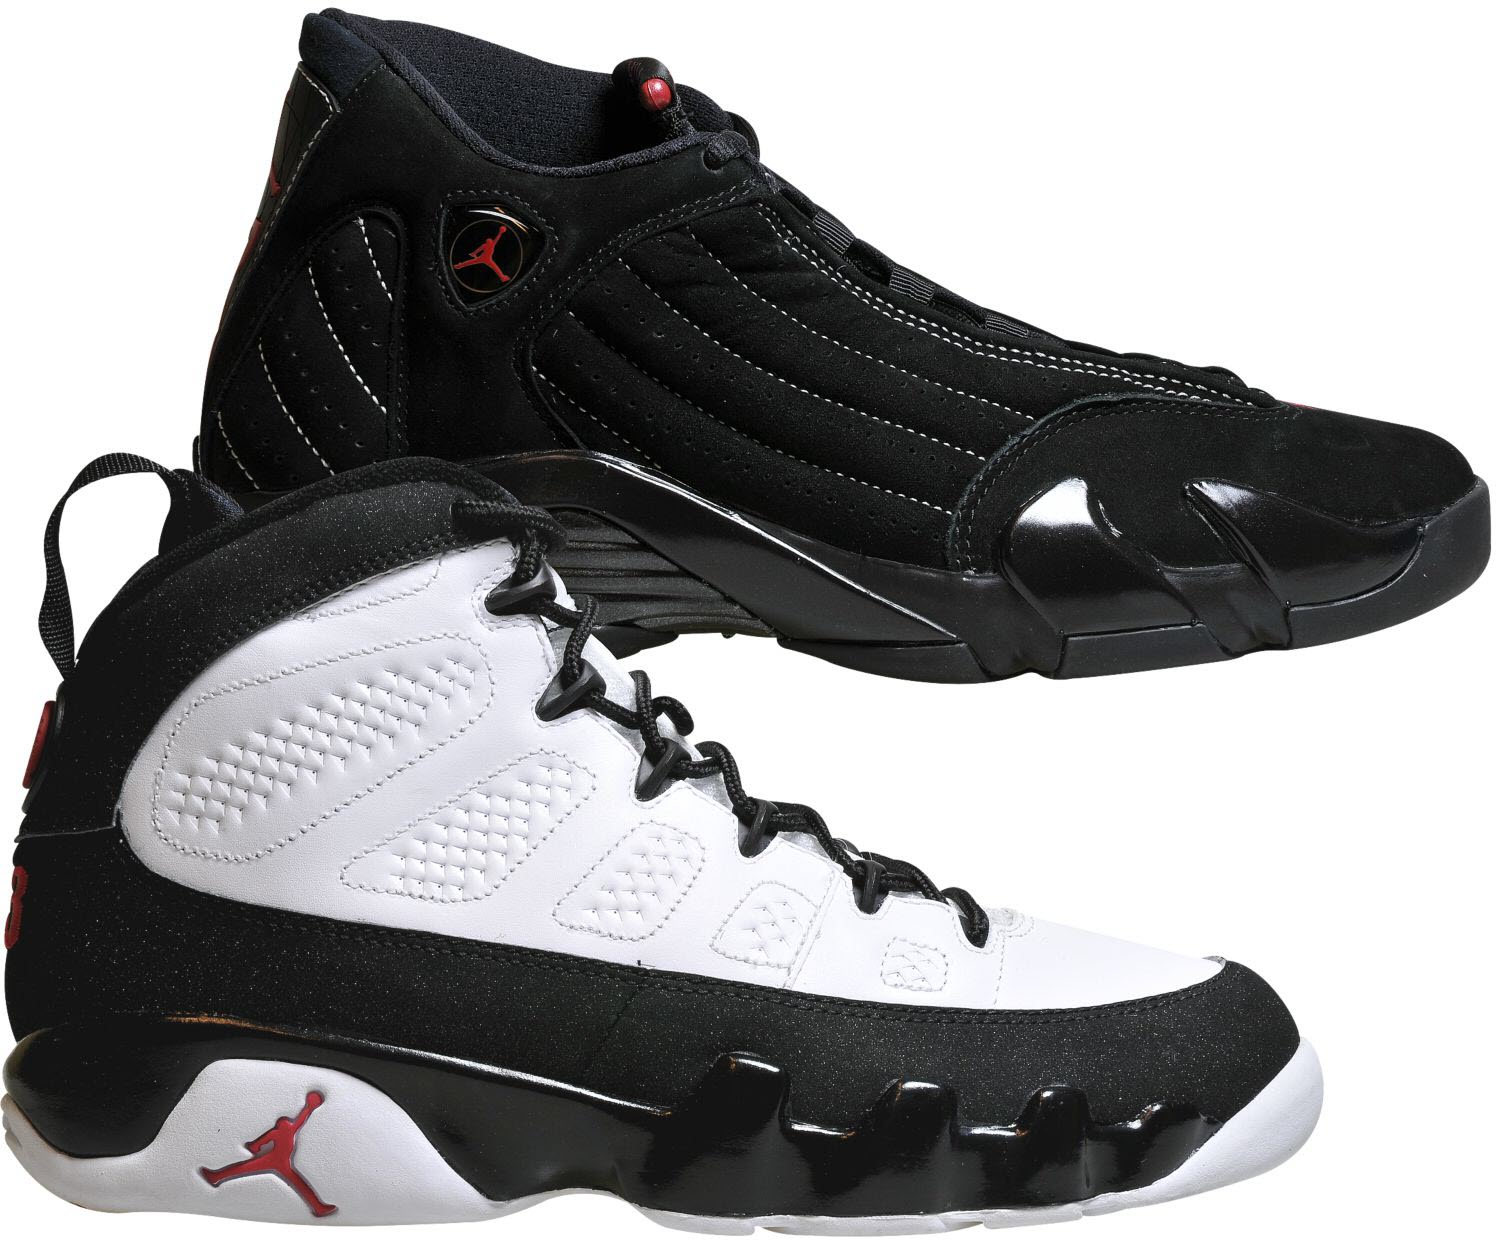 dfbf5ab9a9a7 ... air jordan 14 cdp us 12 4a61d 579f6  best price jordan countdown pack 9  14 0c021 6c4a5